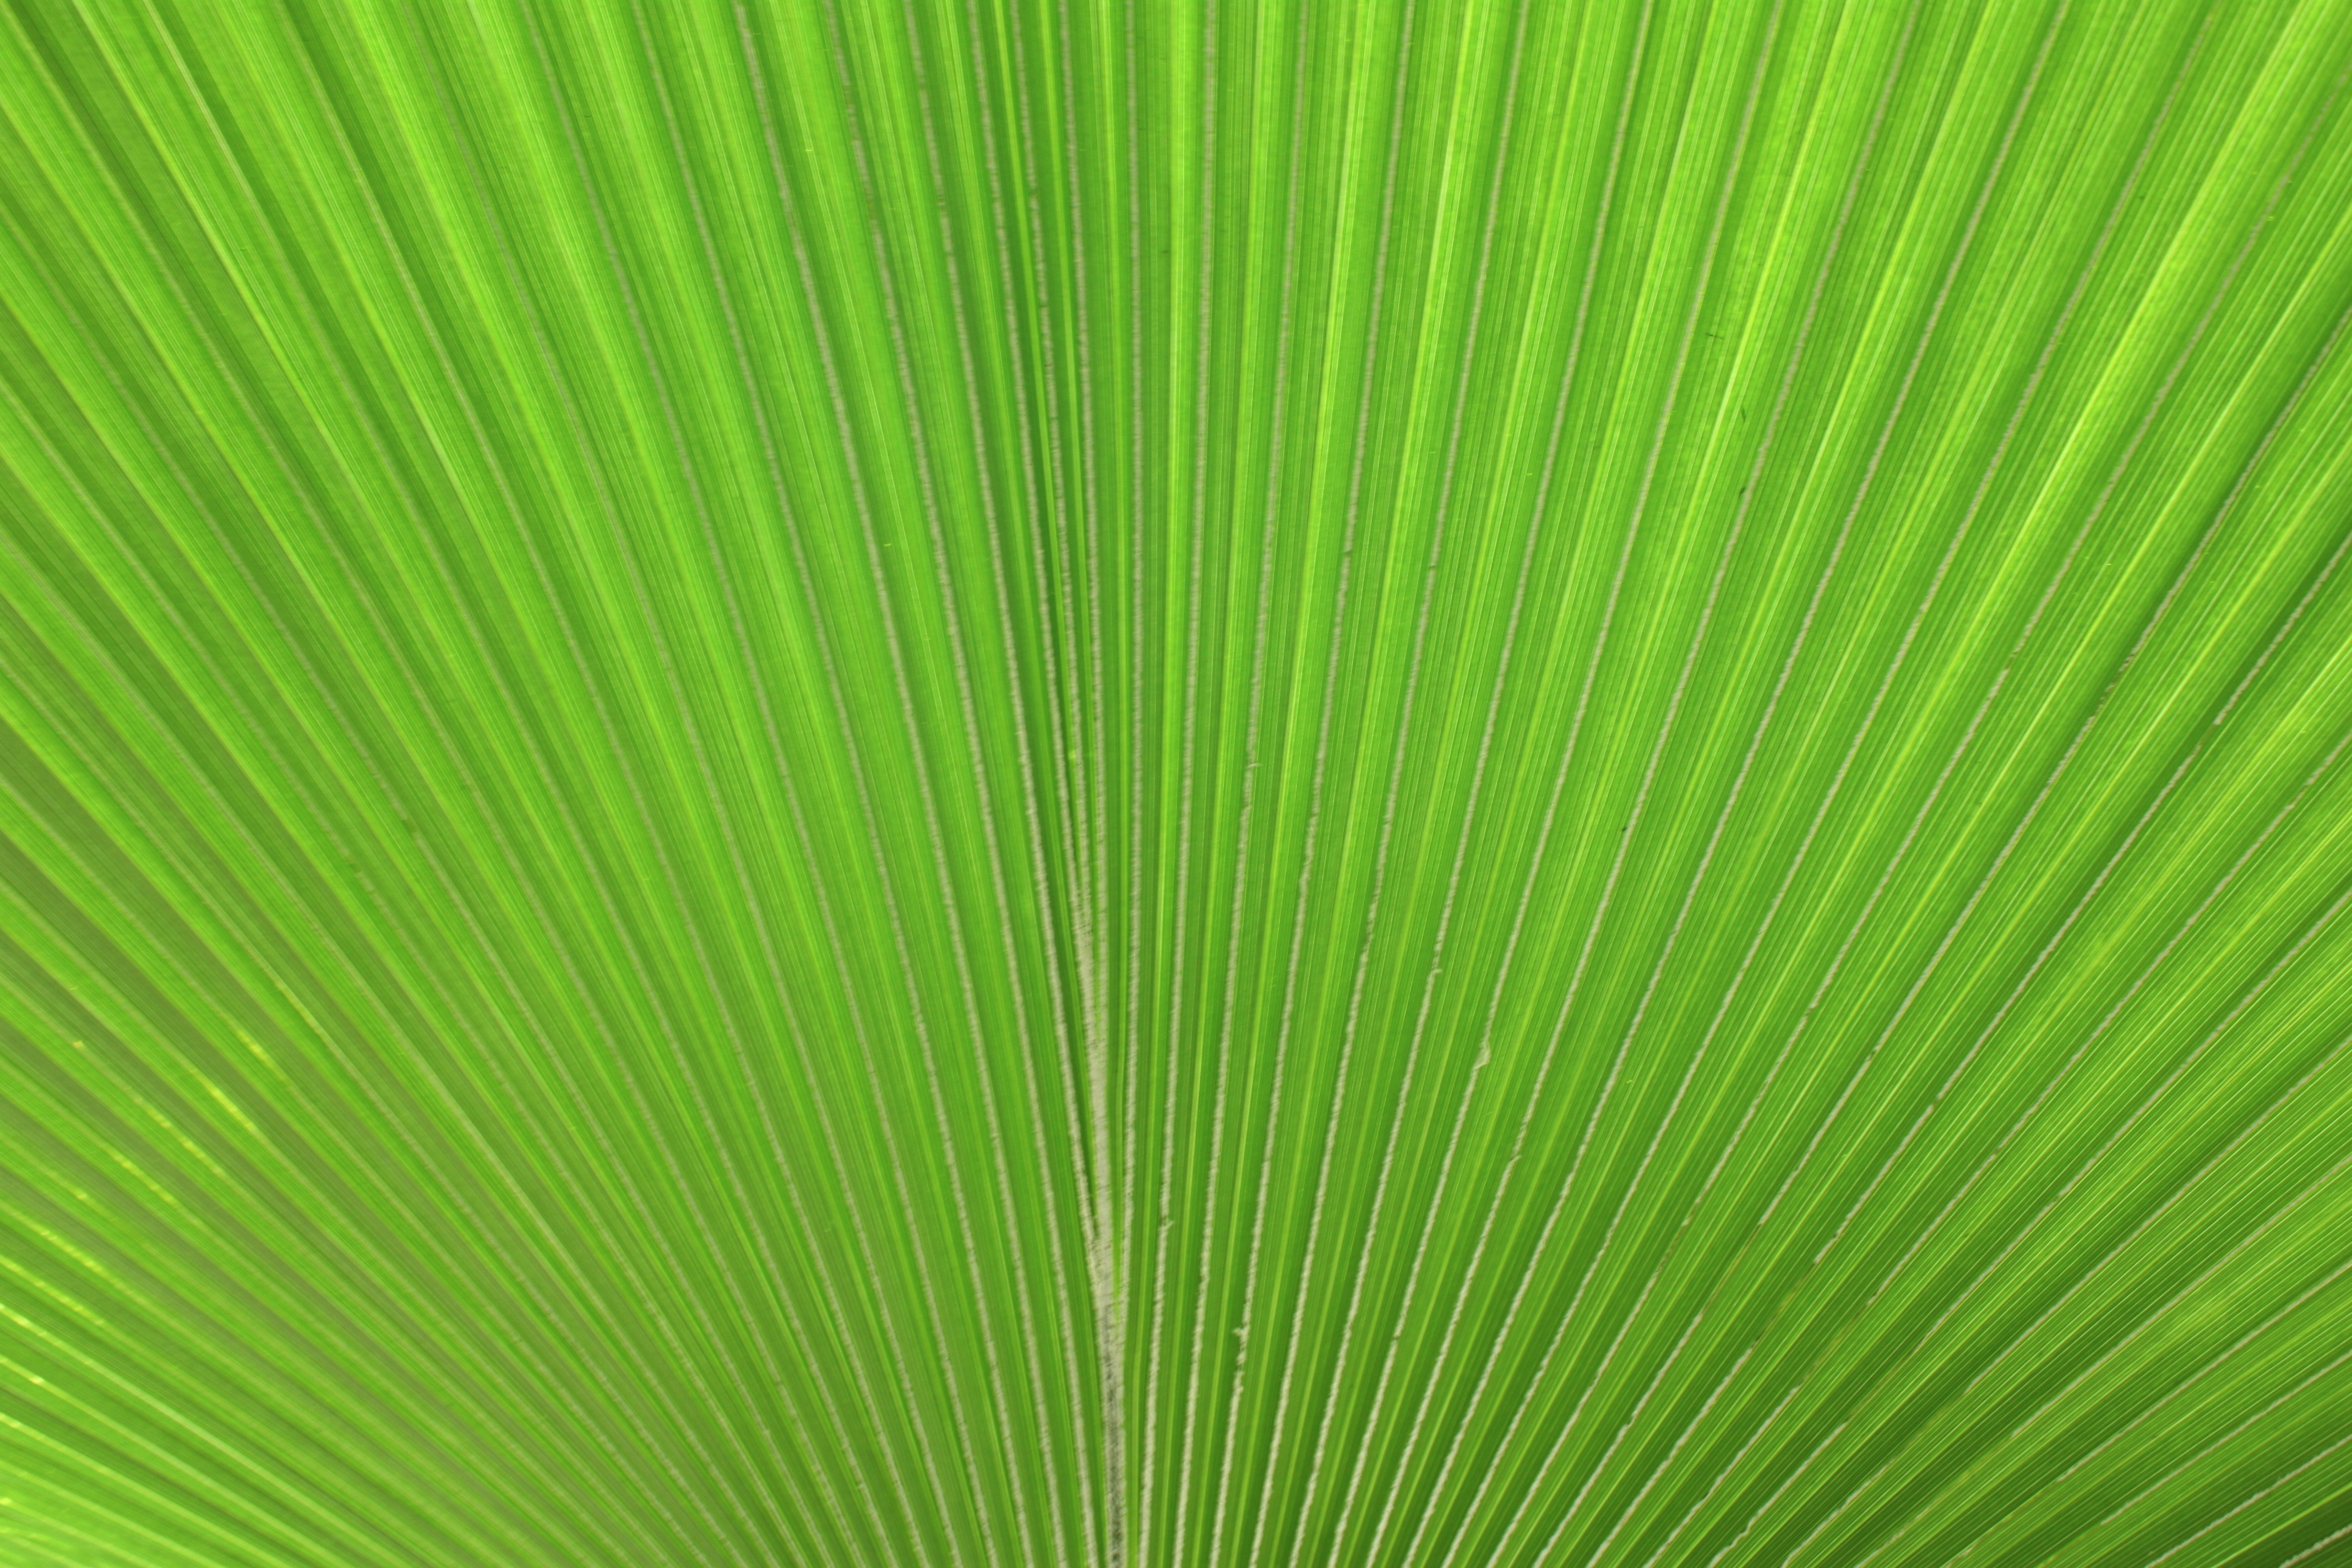 Free Photo Close Up Of A Large Green Tropical Leaf Foliage Green Leaves Free Download Jooinn Beautful sunlight and green leaves 4k stock video. close up of a large green tropical leaf